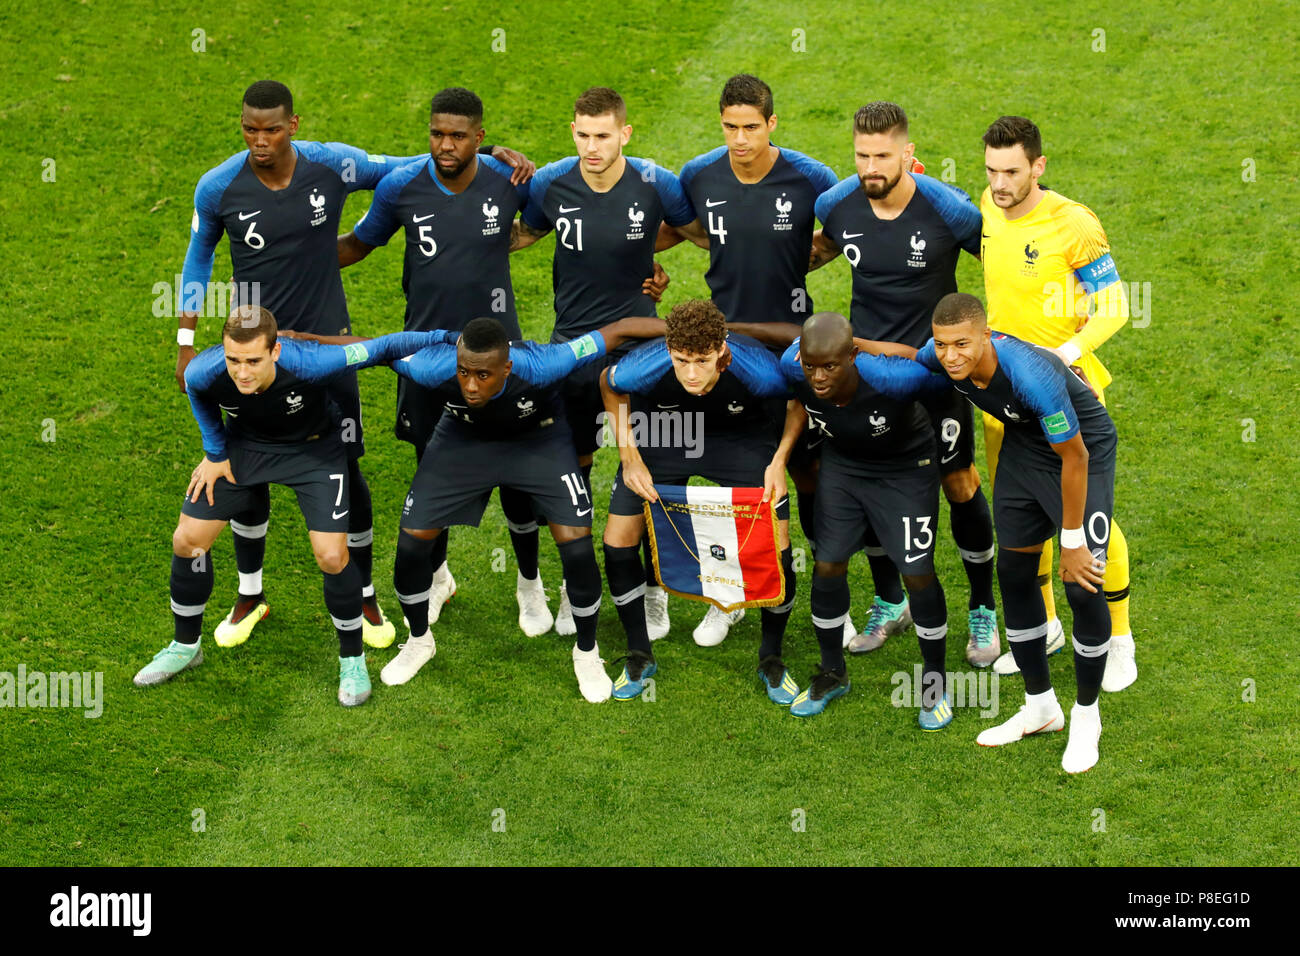 The french team is the reigning world champions. Saint Petersburg Russia July 10 France National Team Players Pose For A Photo During The 2018 Fifa World Cup Russia Semi Final Match Between France And Belgium At Saint Petersburg Stadium